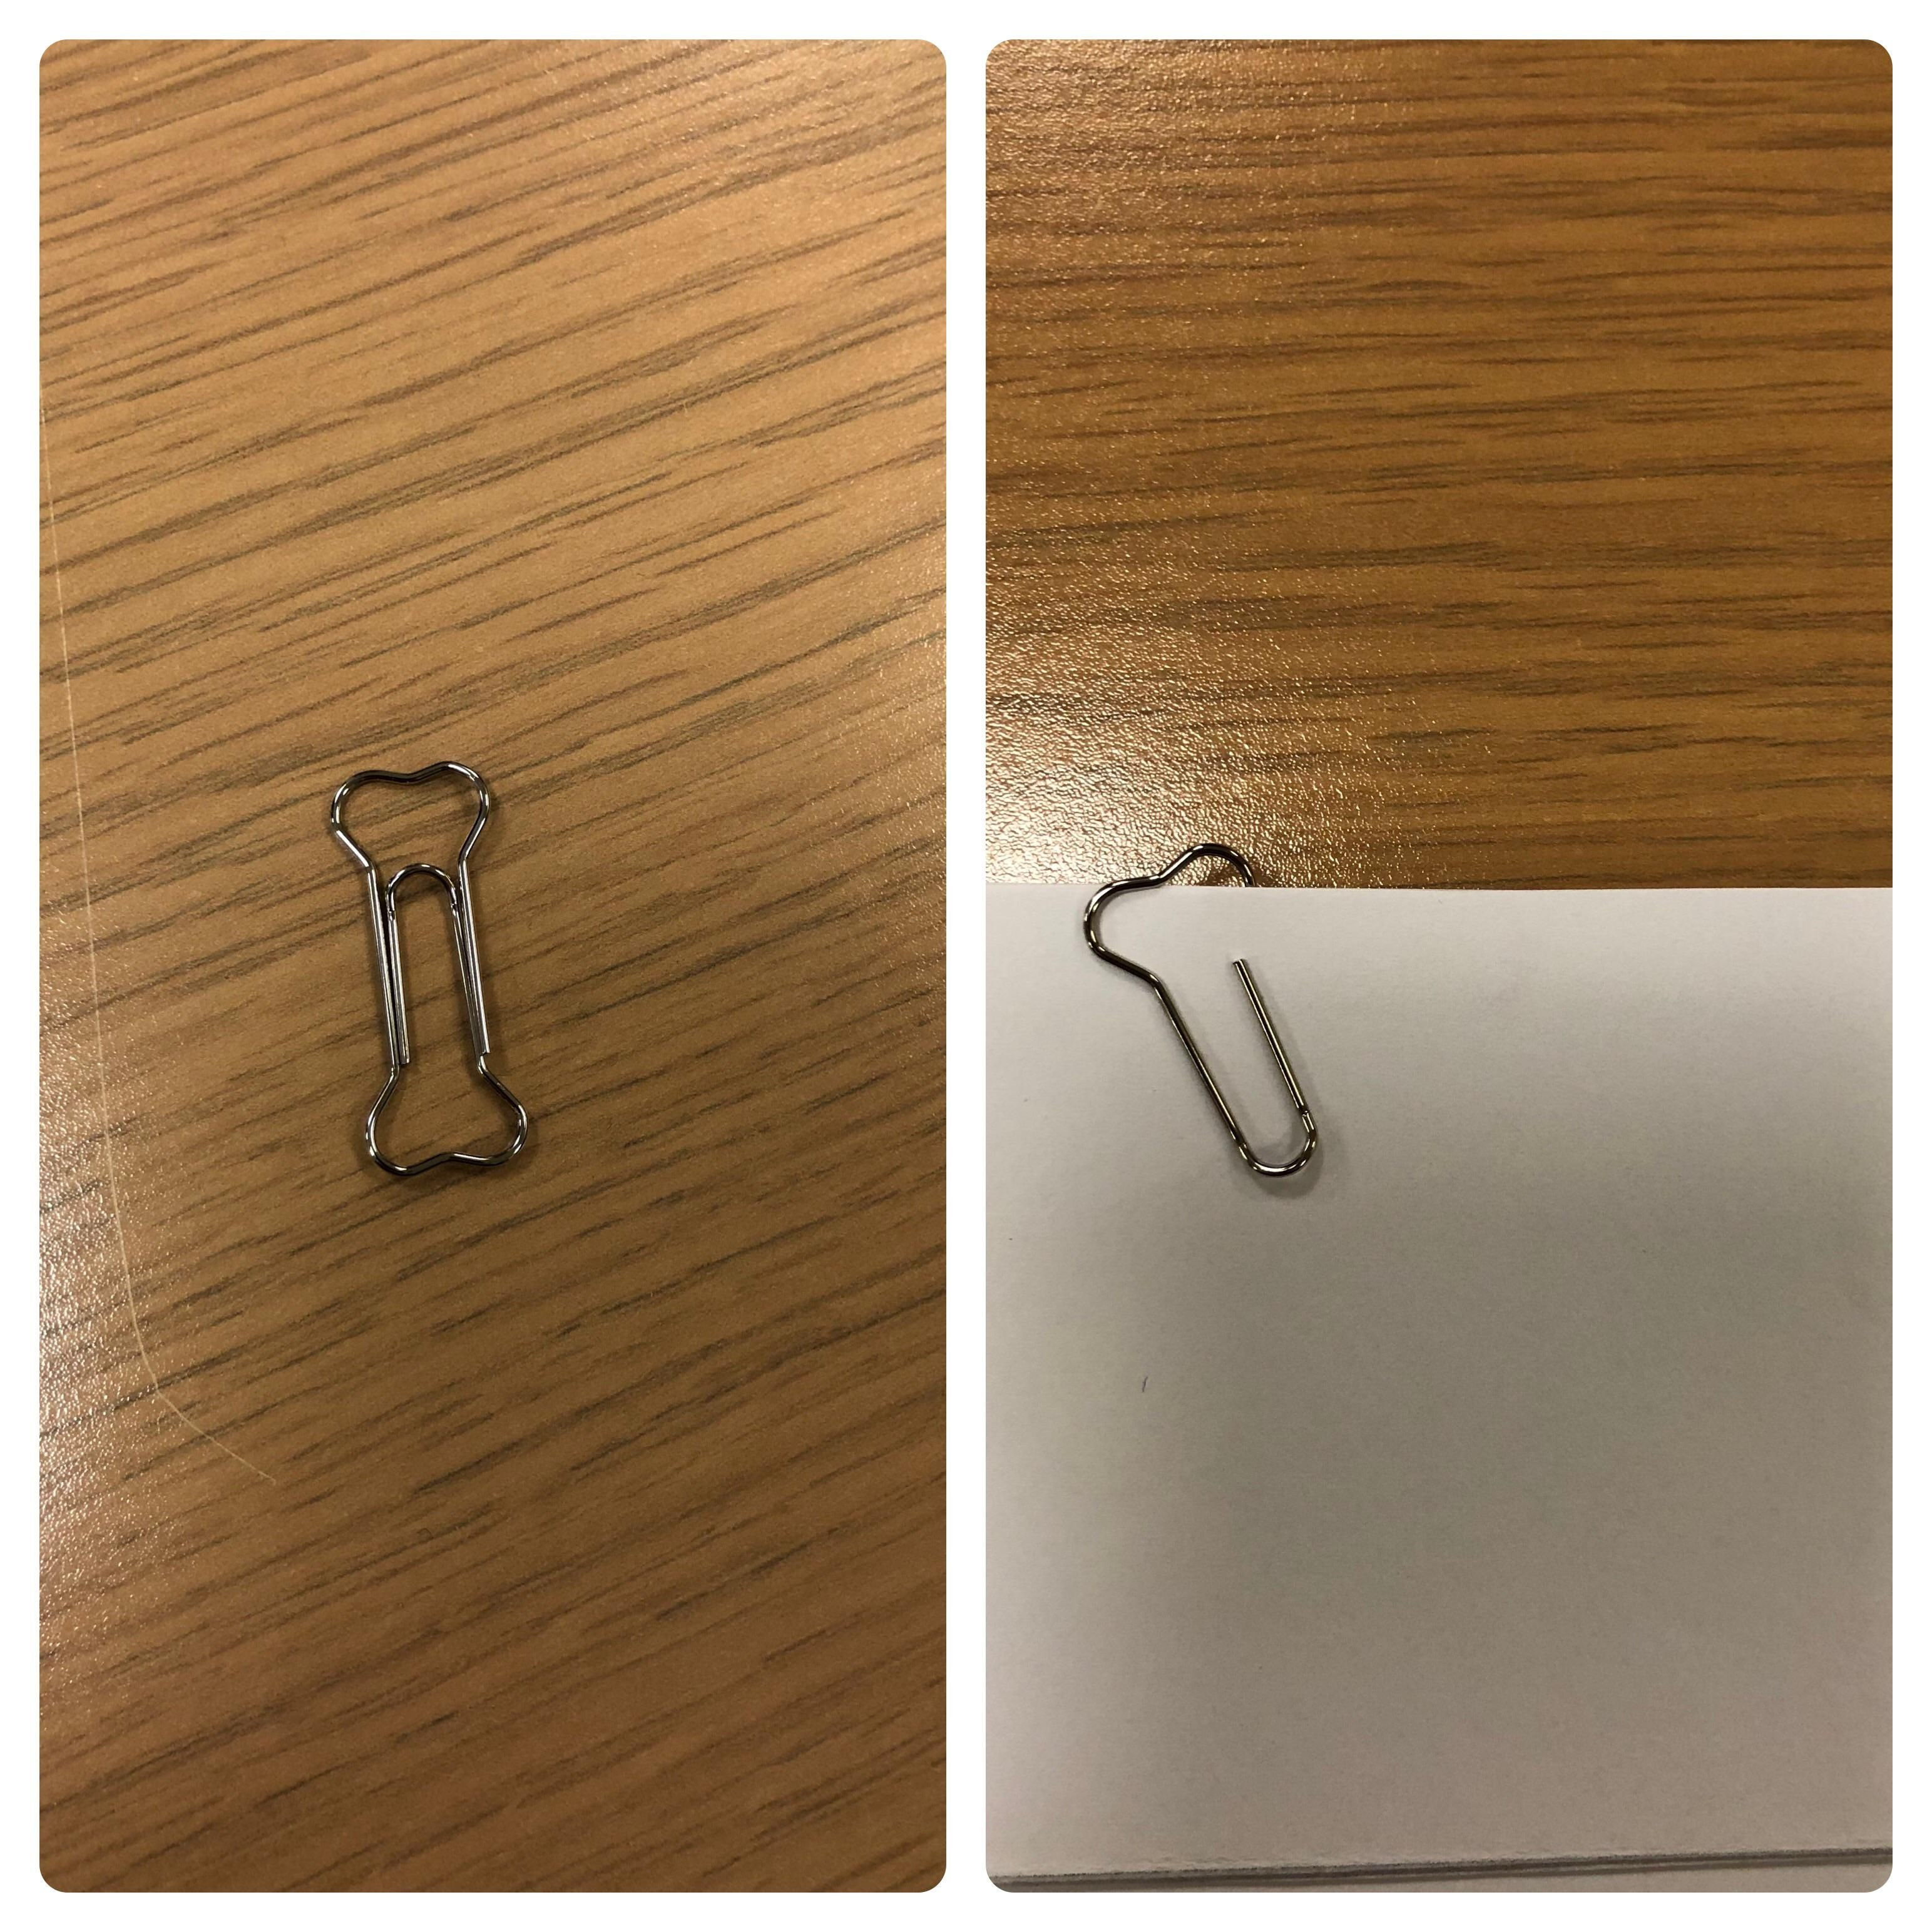 Client bought paper clips shaped like dog bones